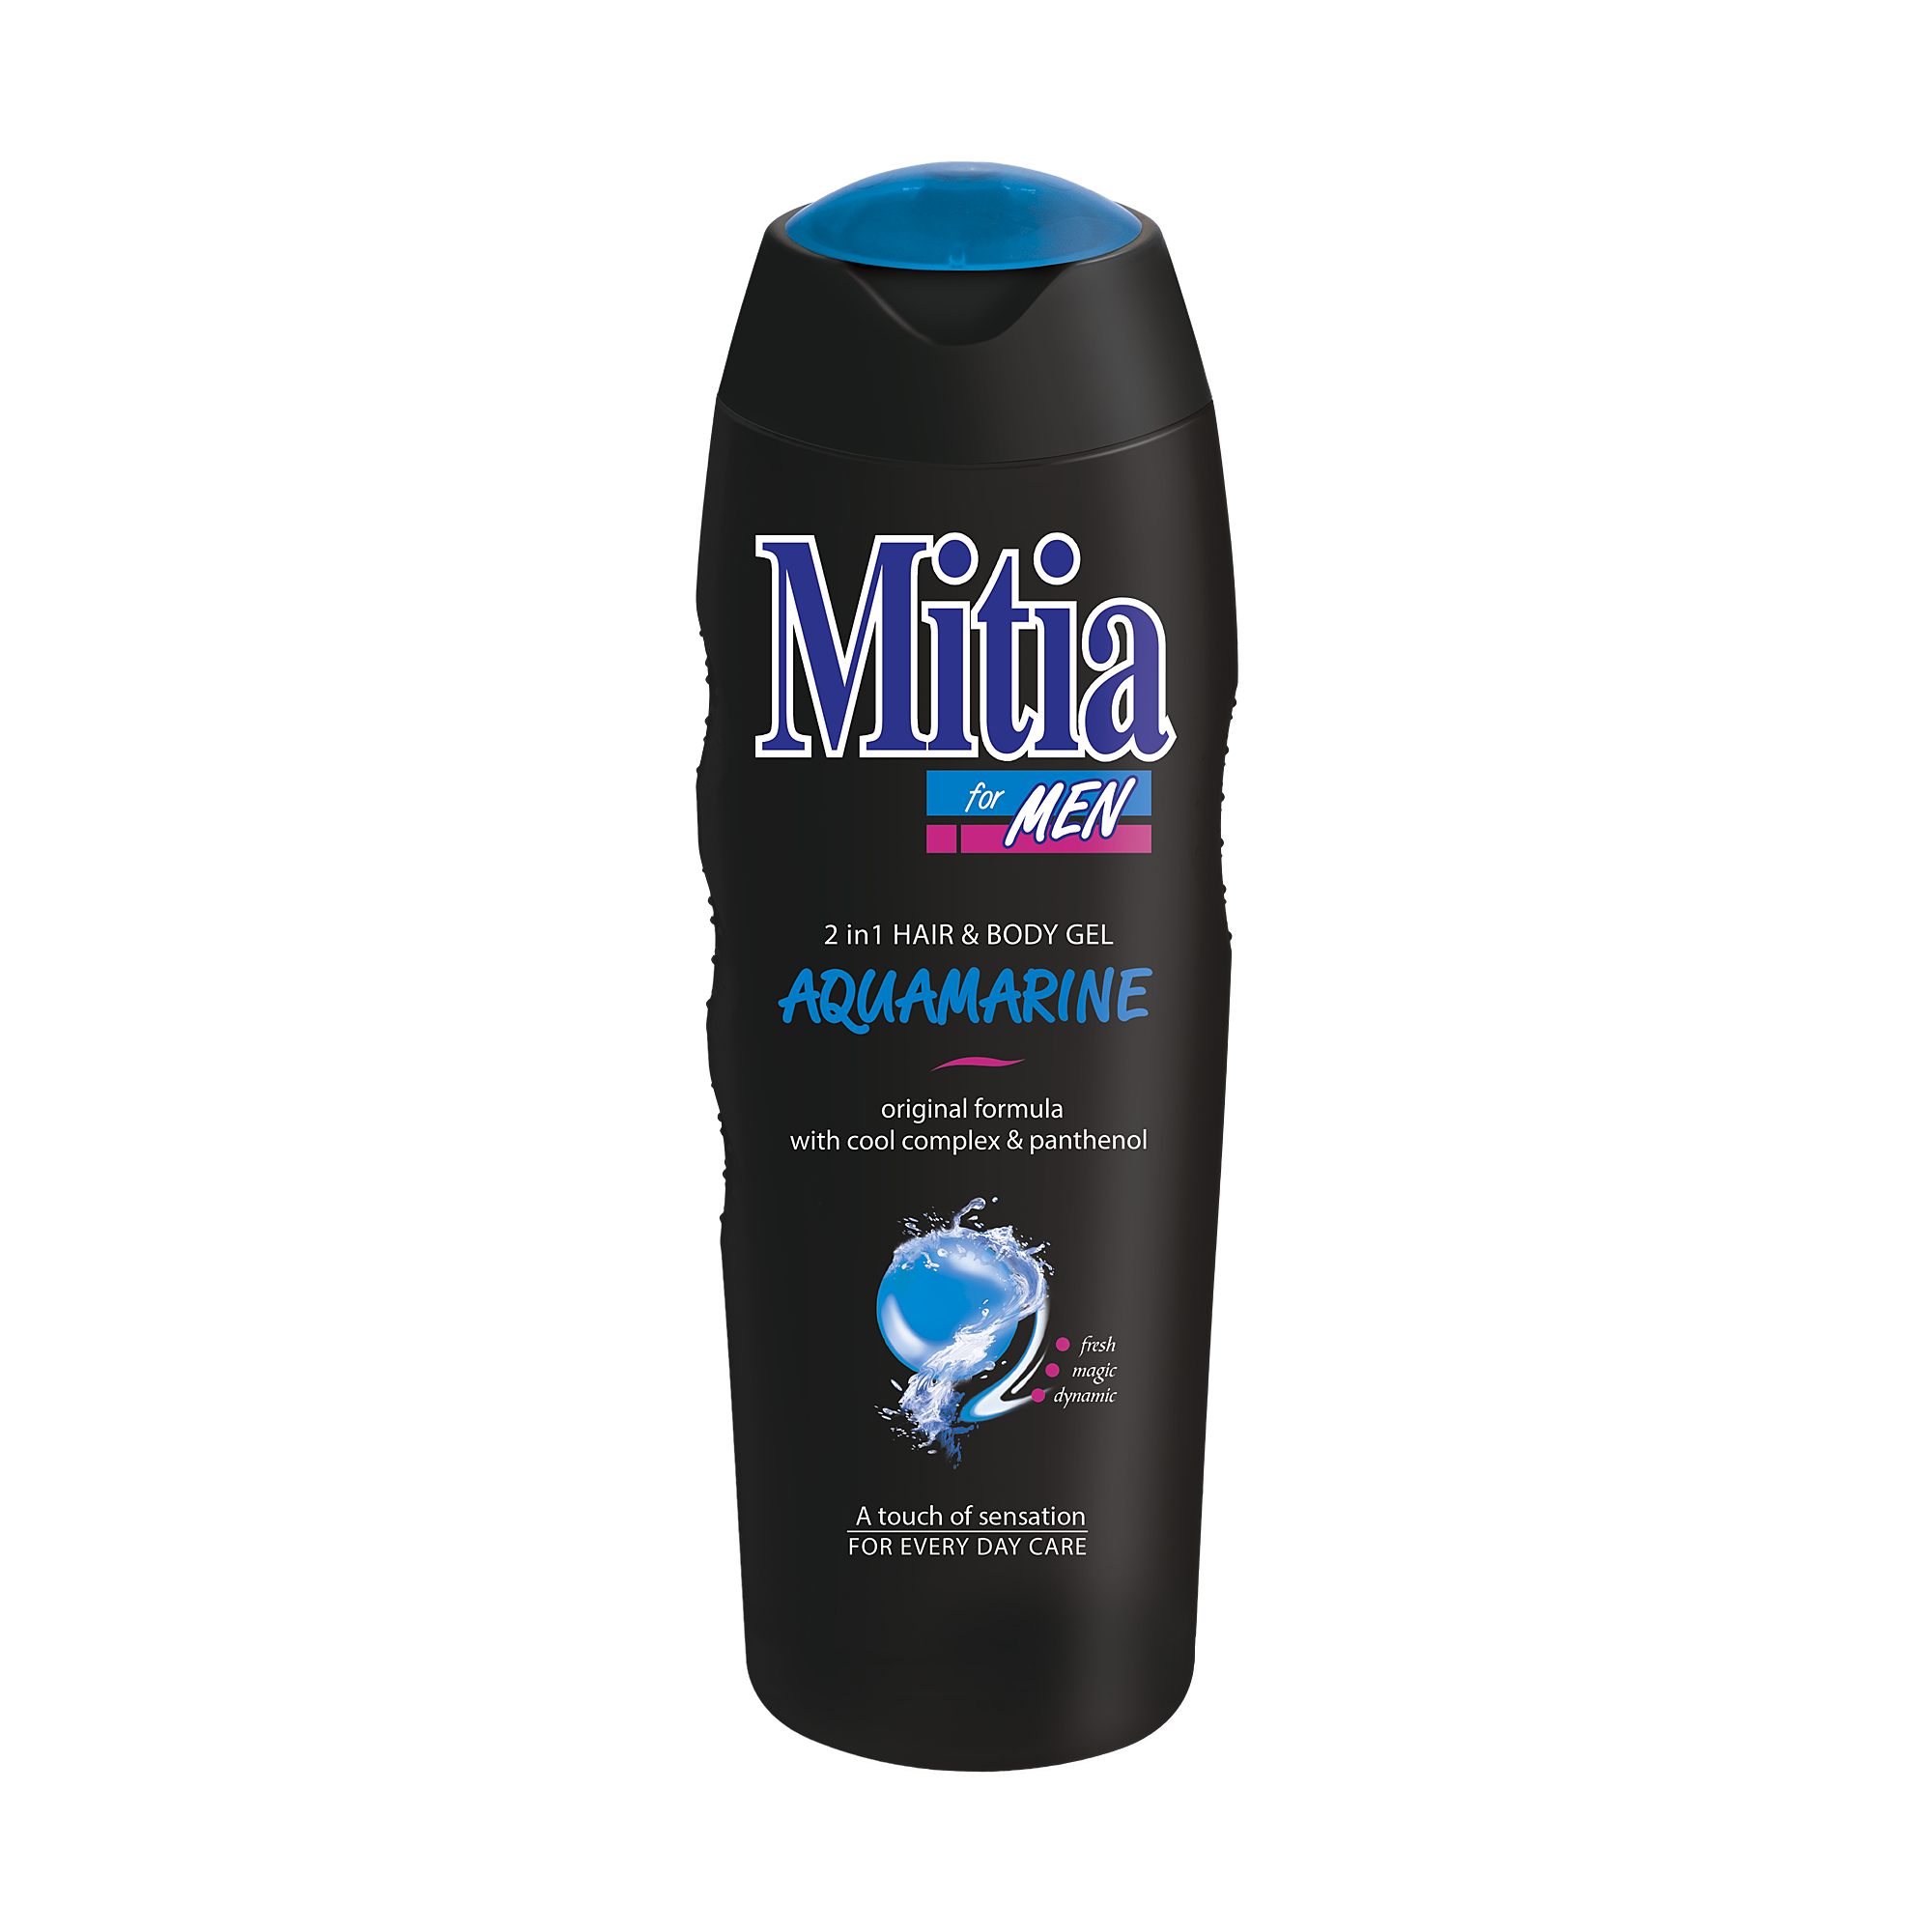 Mitia for men żel pod prysznic Aquamarine